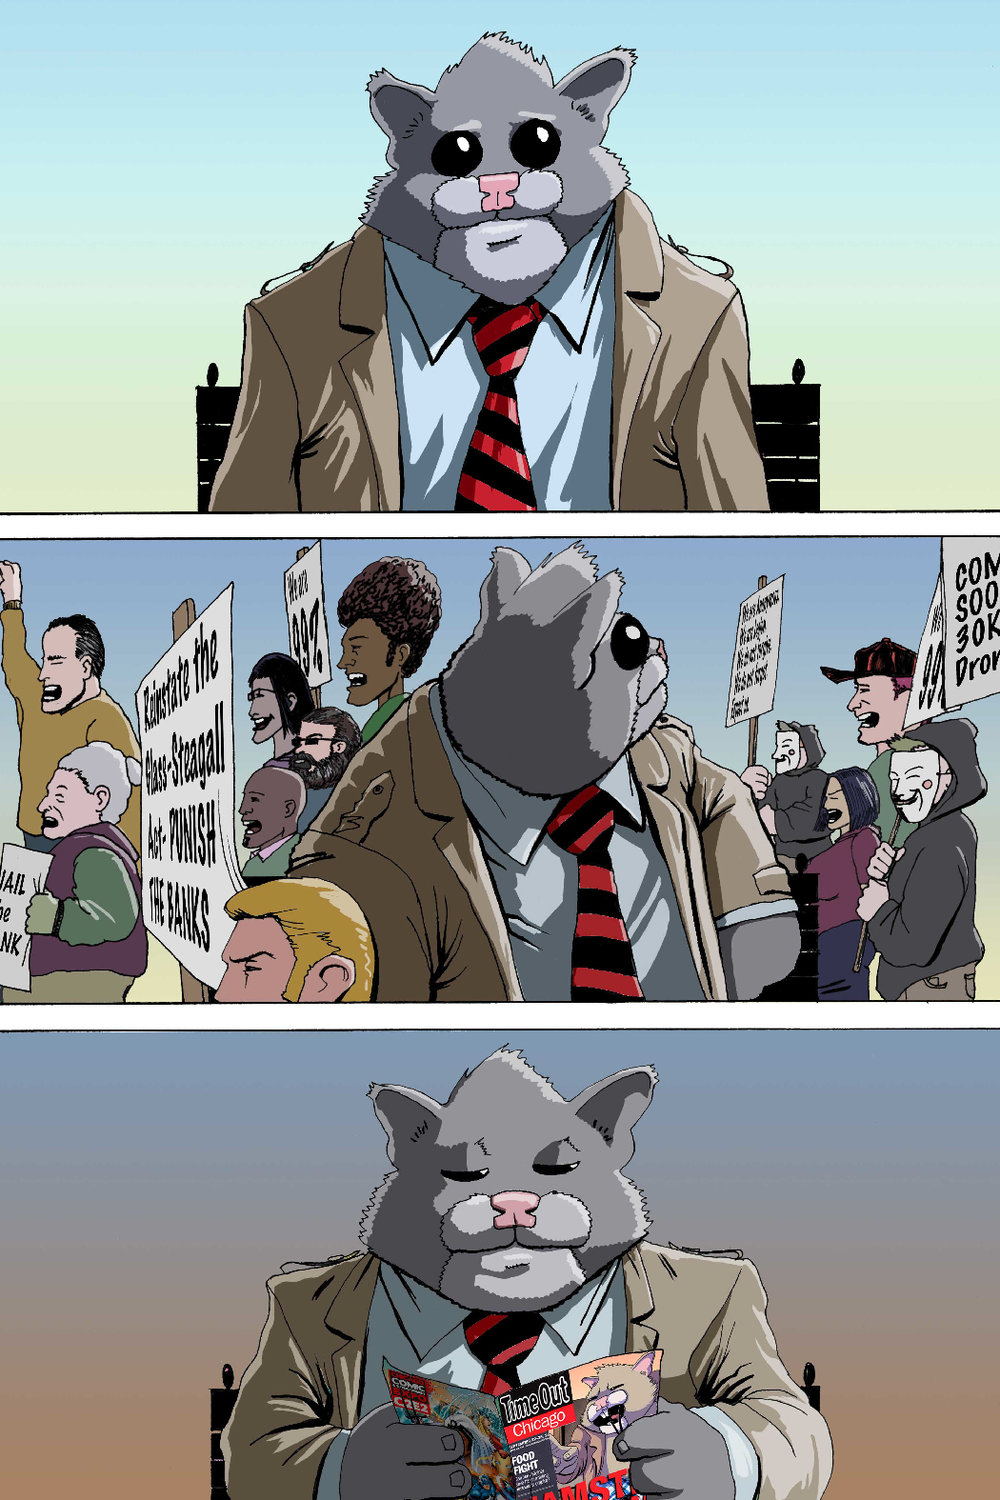 PAGE 43 Panel 1. Roosevelt looks at the camera bored.   Panel 2. Time has passed, Occupy Protesters stroll by Roosevelt.   Panel 3. Time has passed, Roosevelt sits reading a magazine.